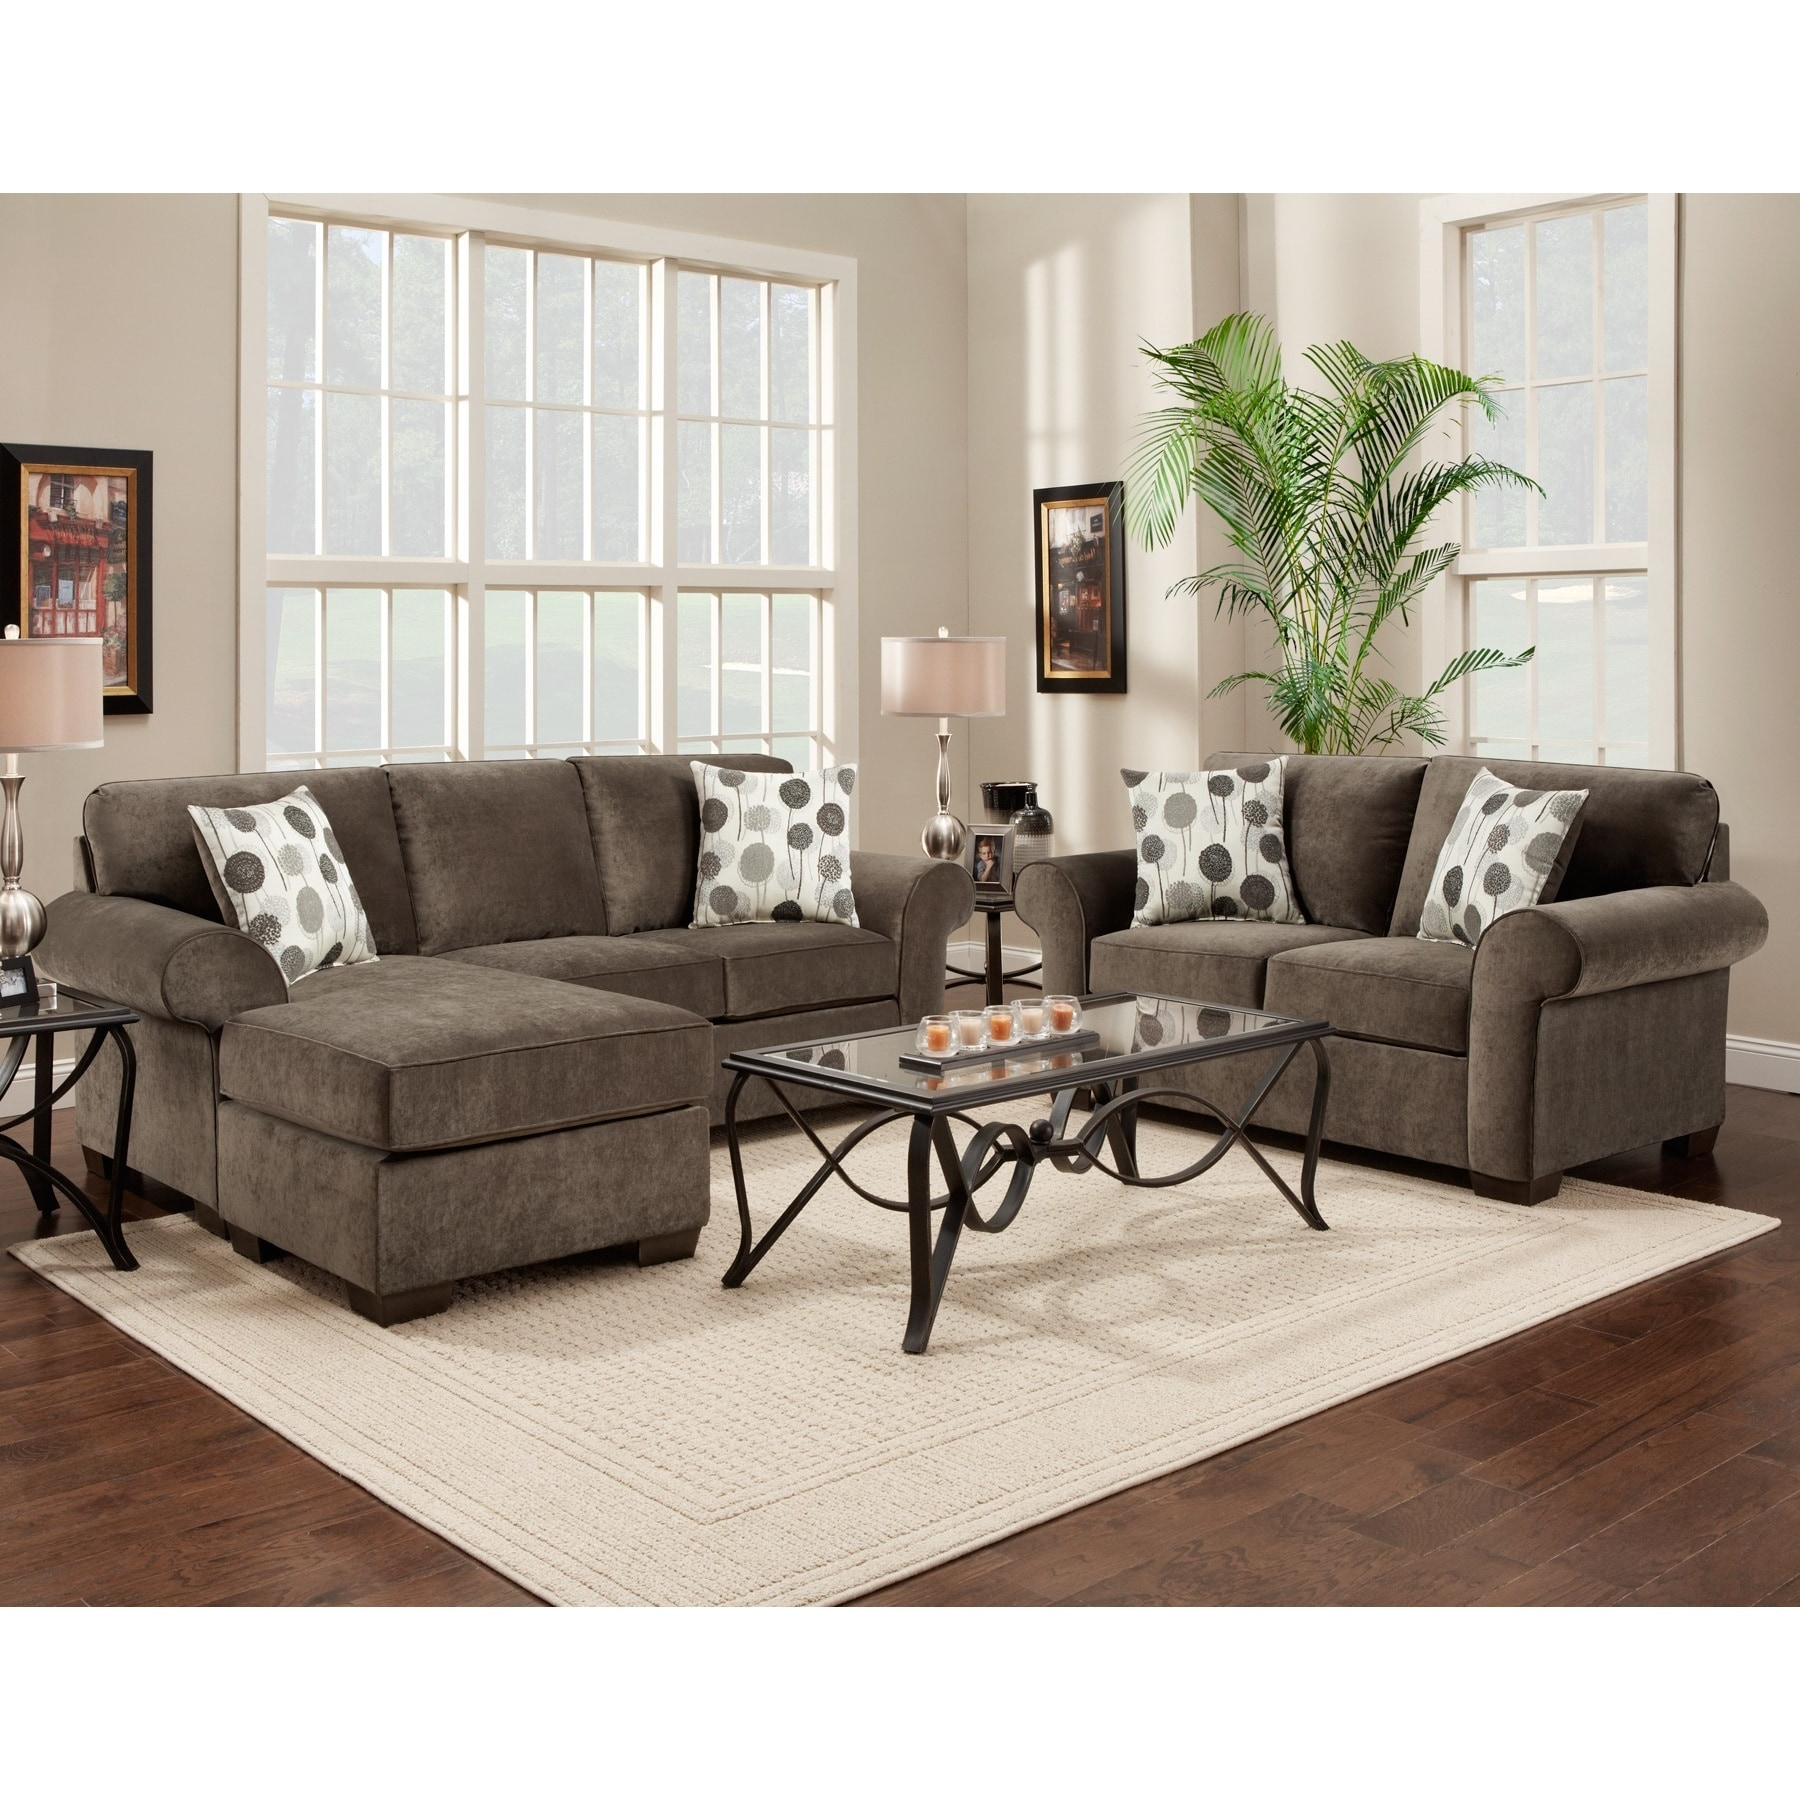 Most Popular Sectional Loveseat – Tidex Regarding Declan 3 Piece Power Reclining Sectionals With Left Facing Console Loveseat (View 15 of 20)